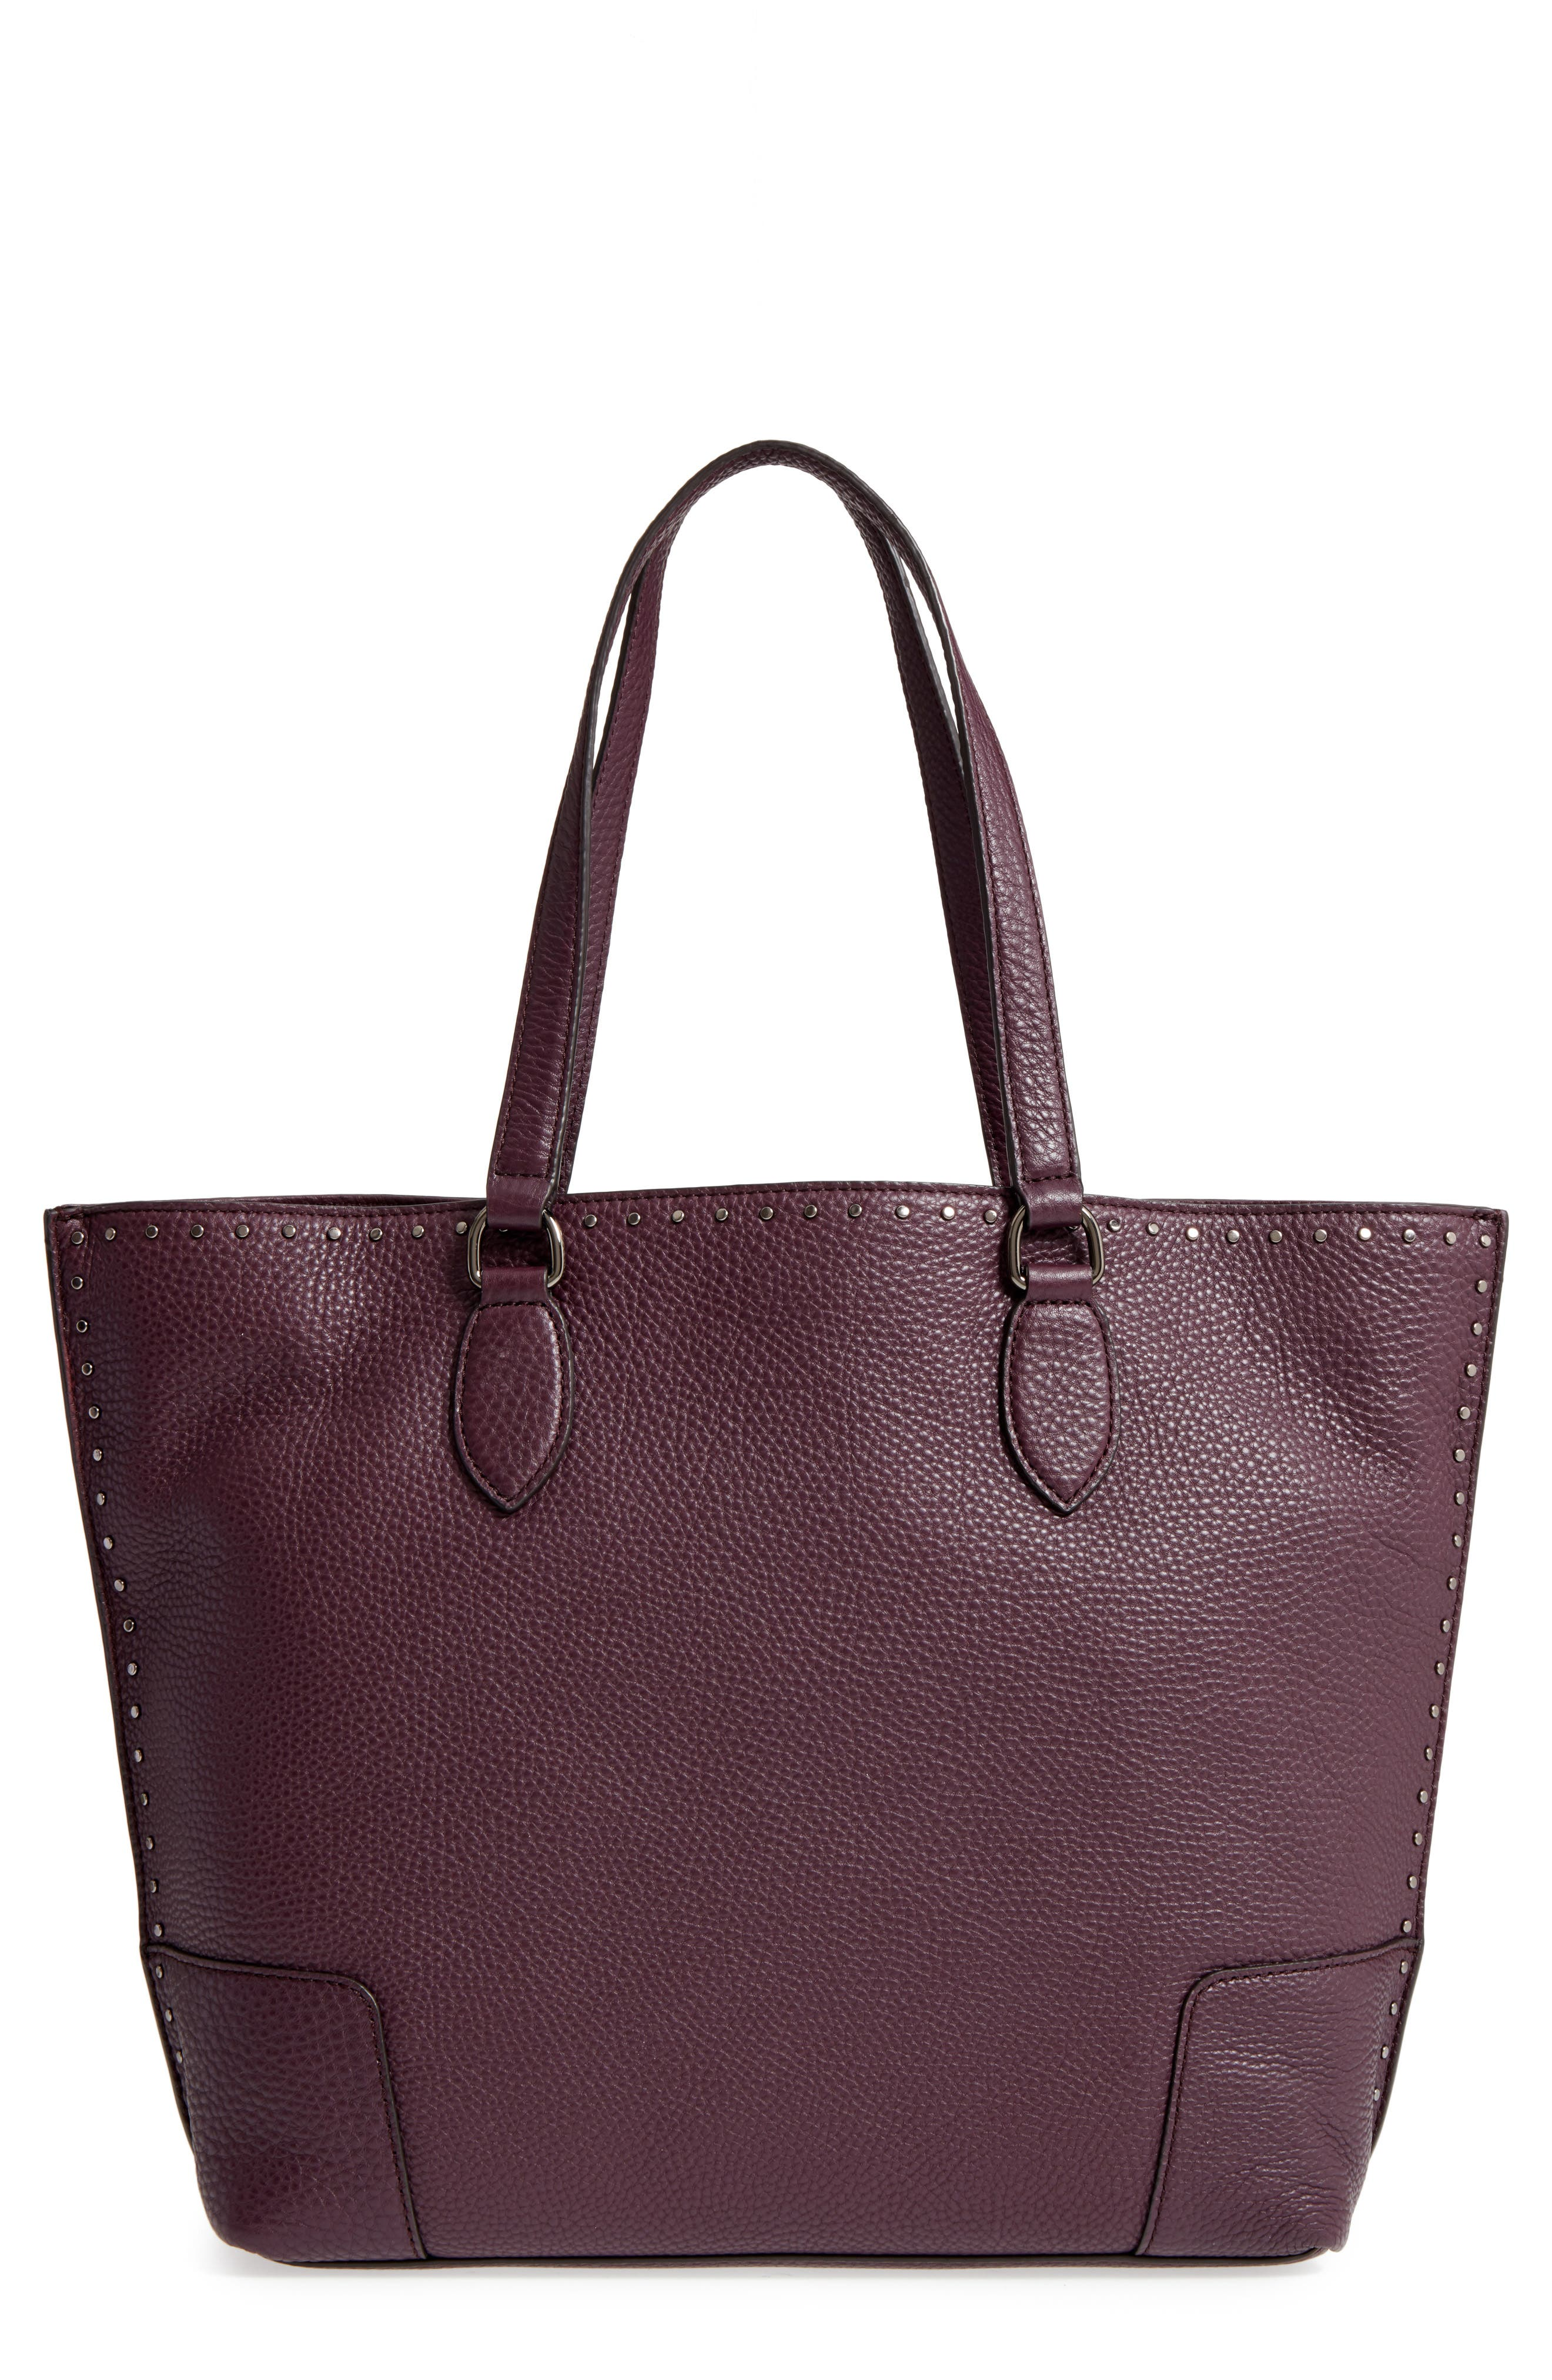 Rebecca Minkoff Moonwalking Leather Tote